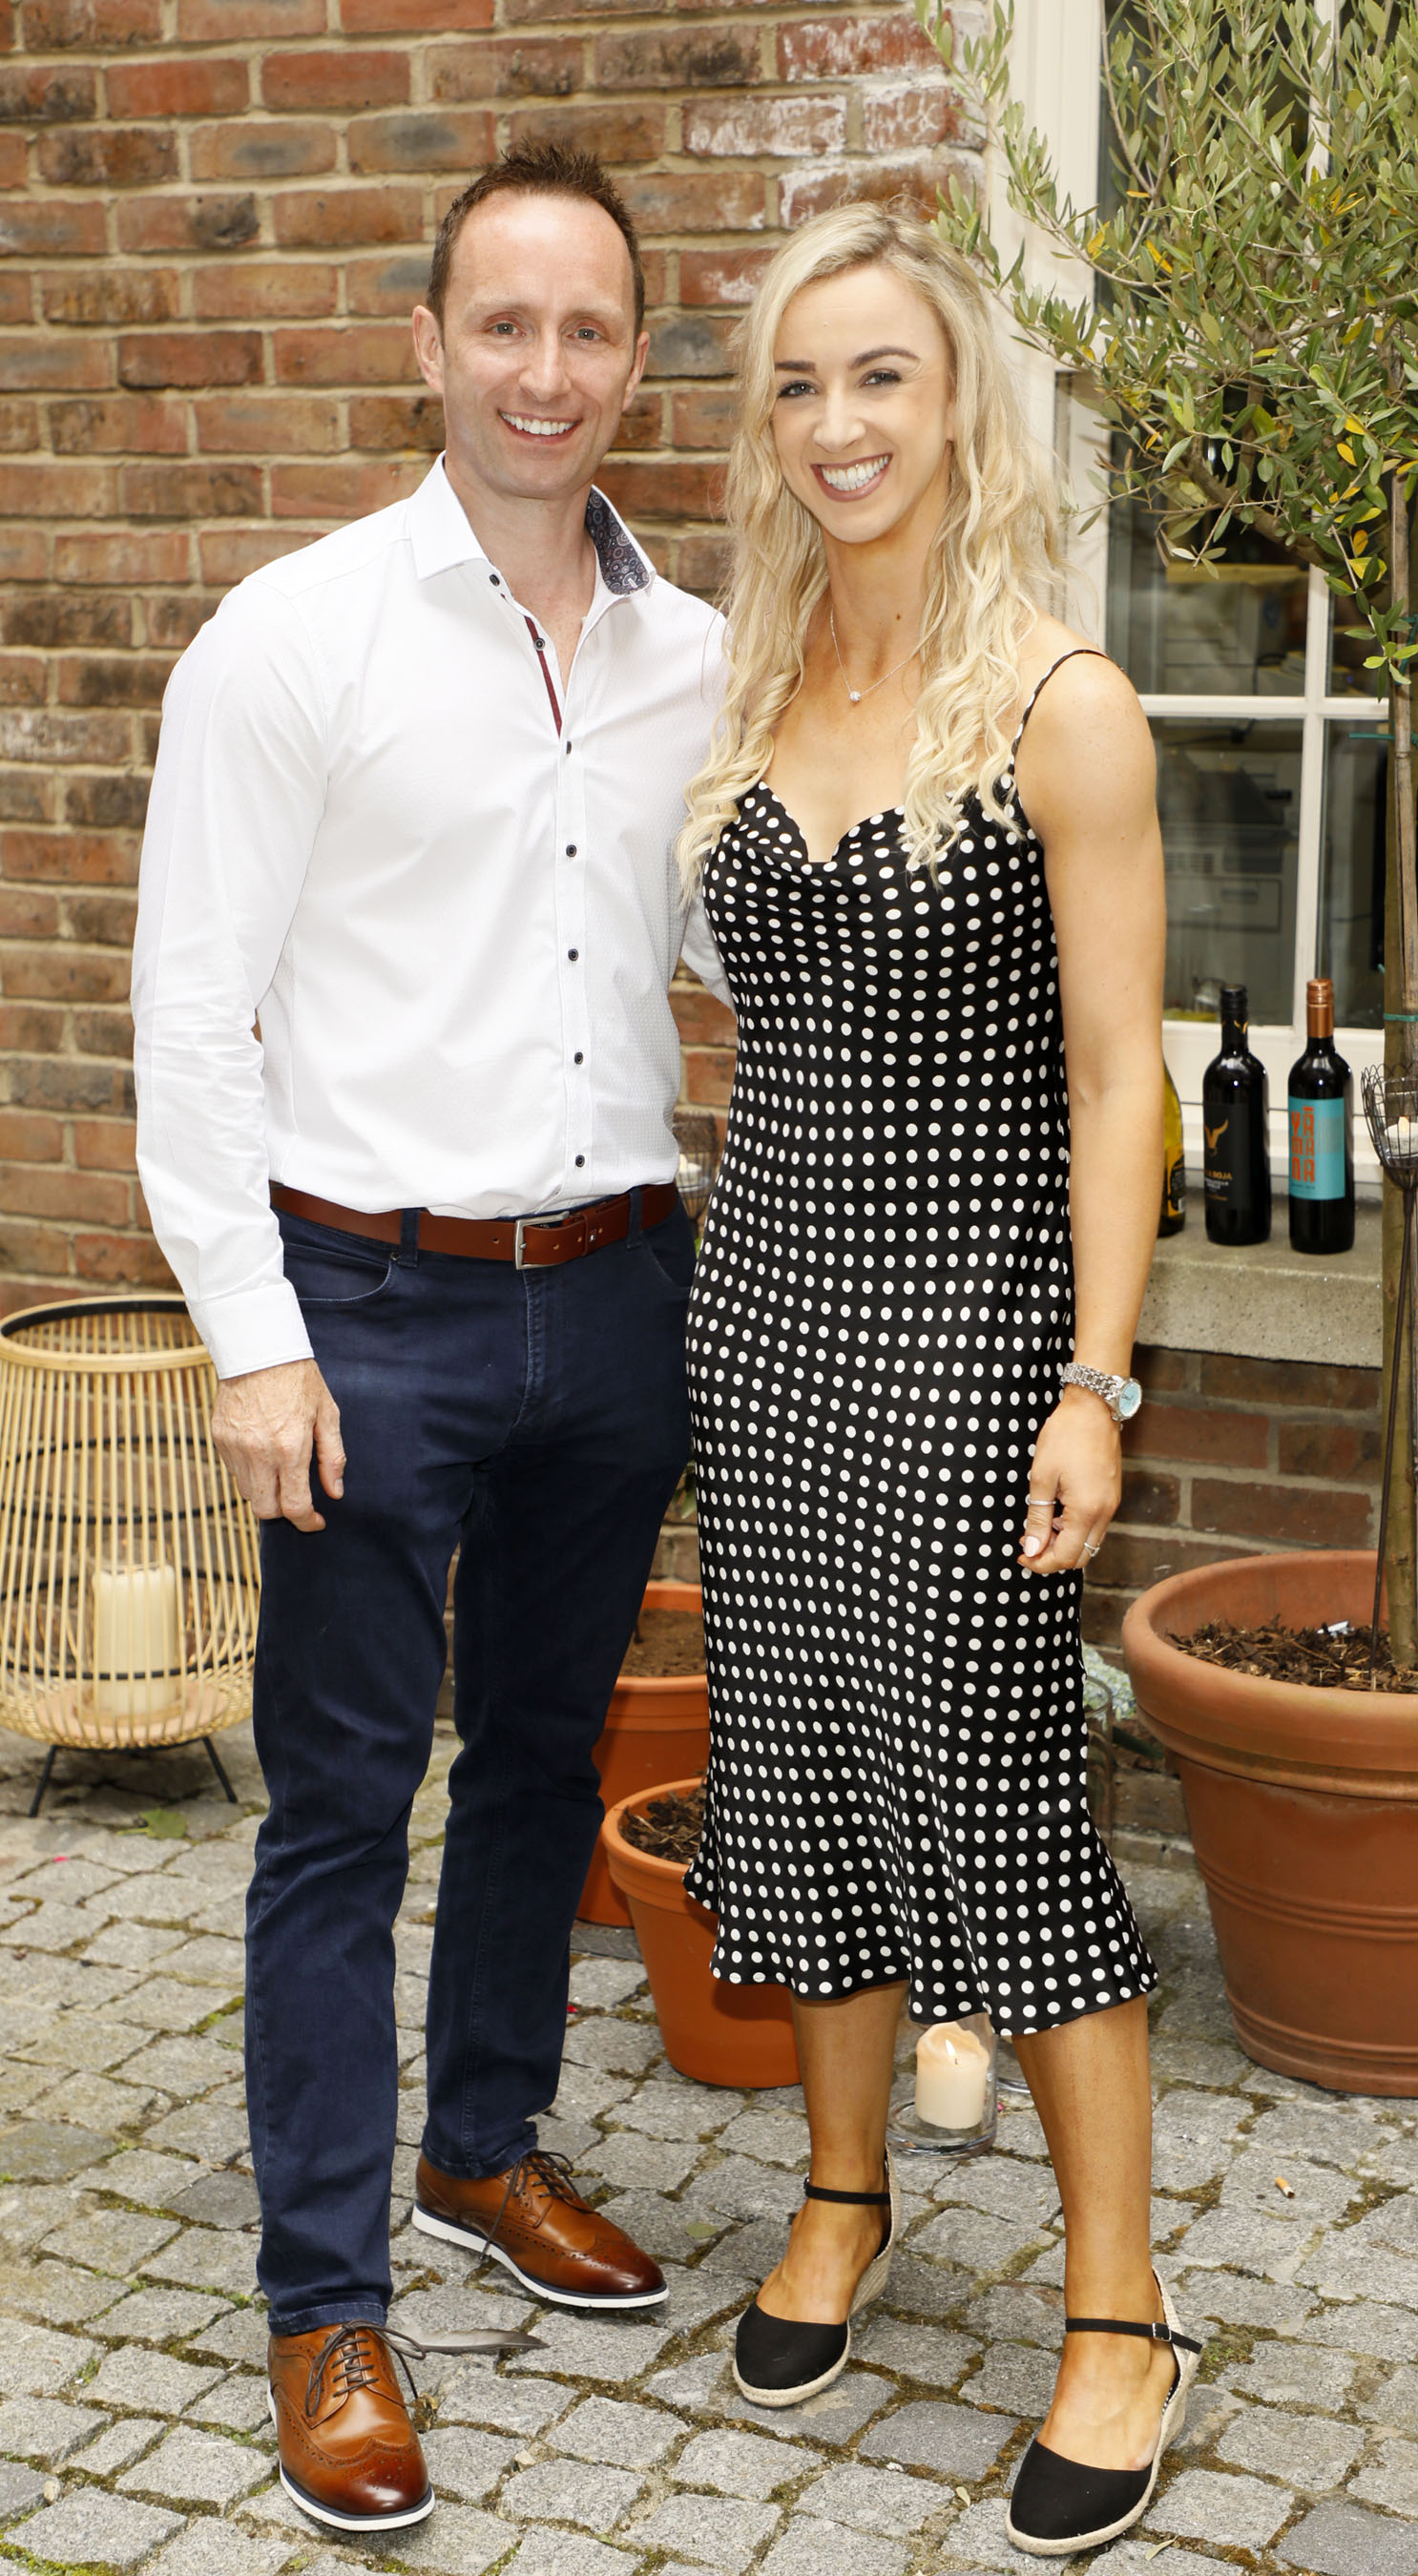 Kevin O'Callaghan and Karen O'Connor at the Centra 'Wines We Love' event in Dublin. Photo: Kieran Harnett